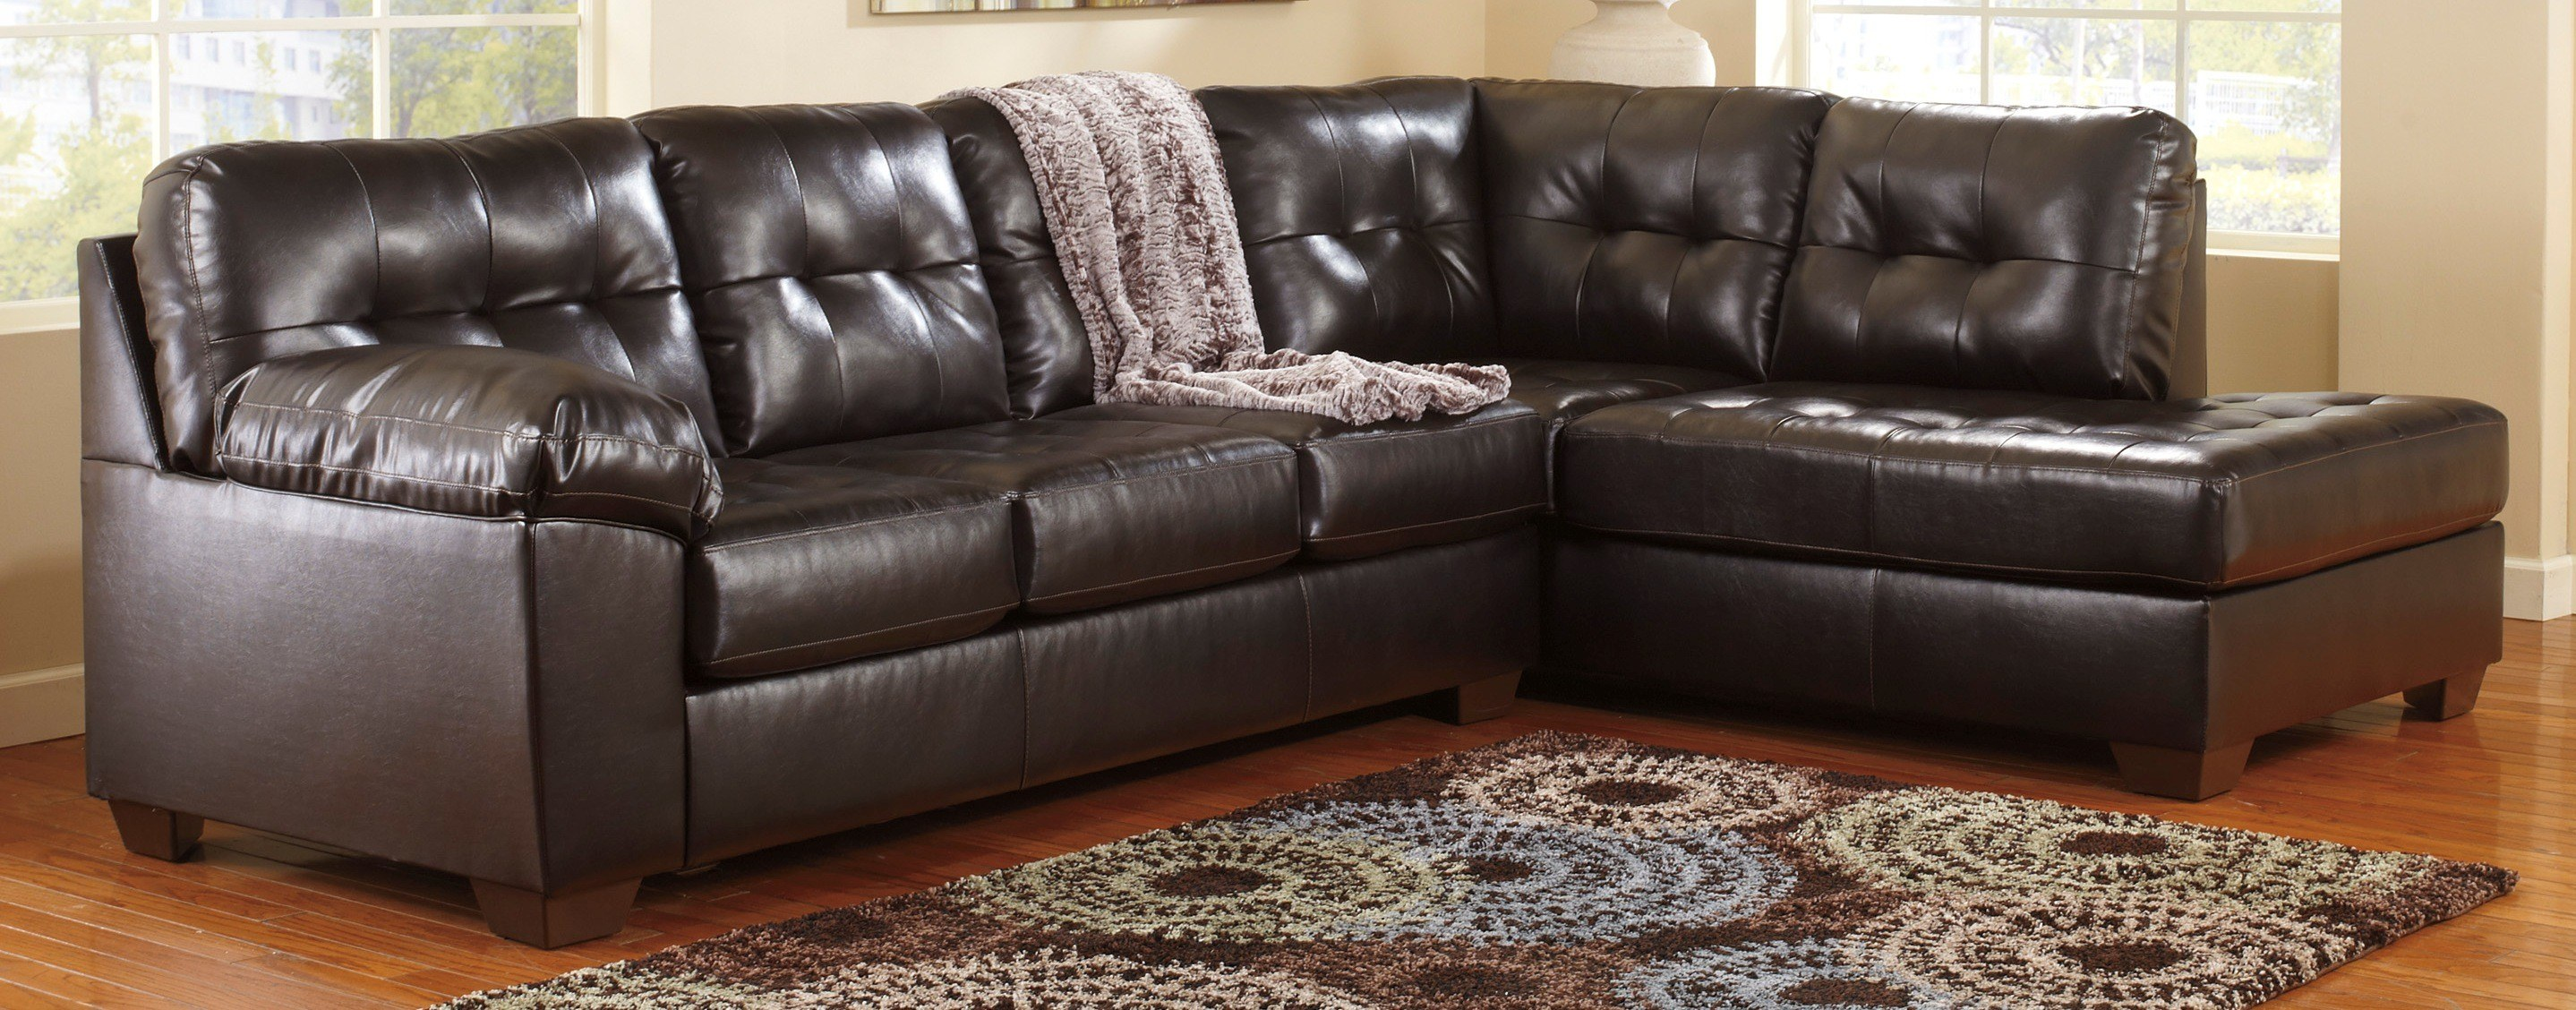 Signature Design By Ashley Alliston DB LAF Chocolate Sectional Sofa